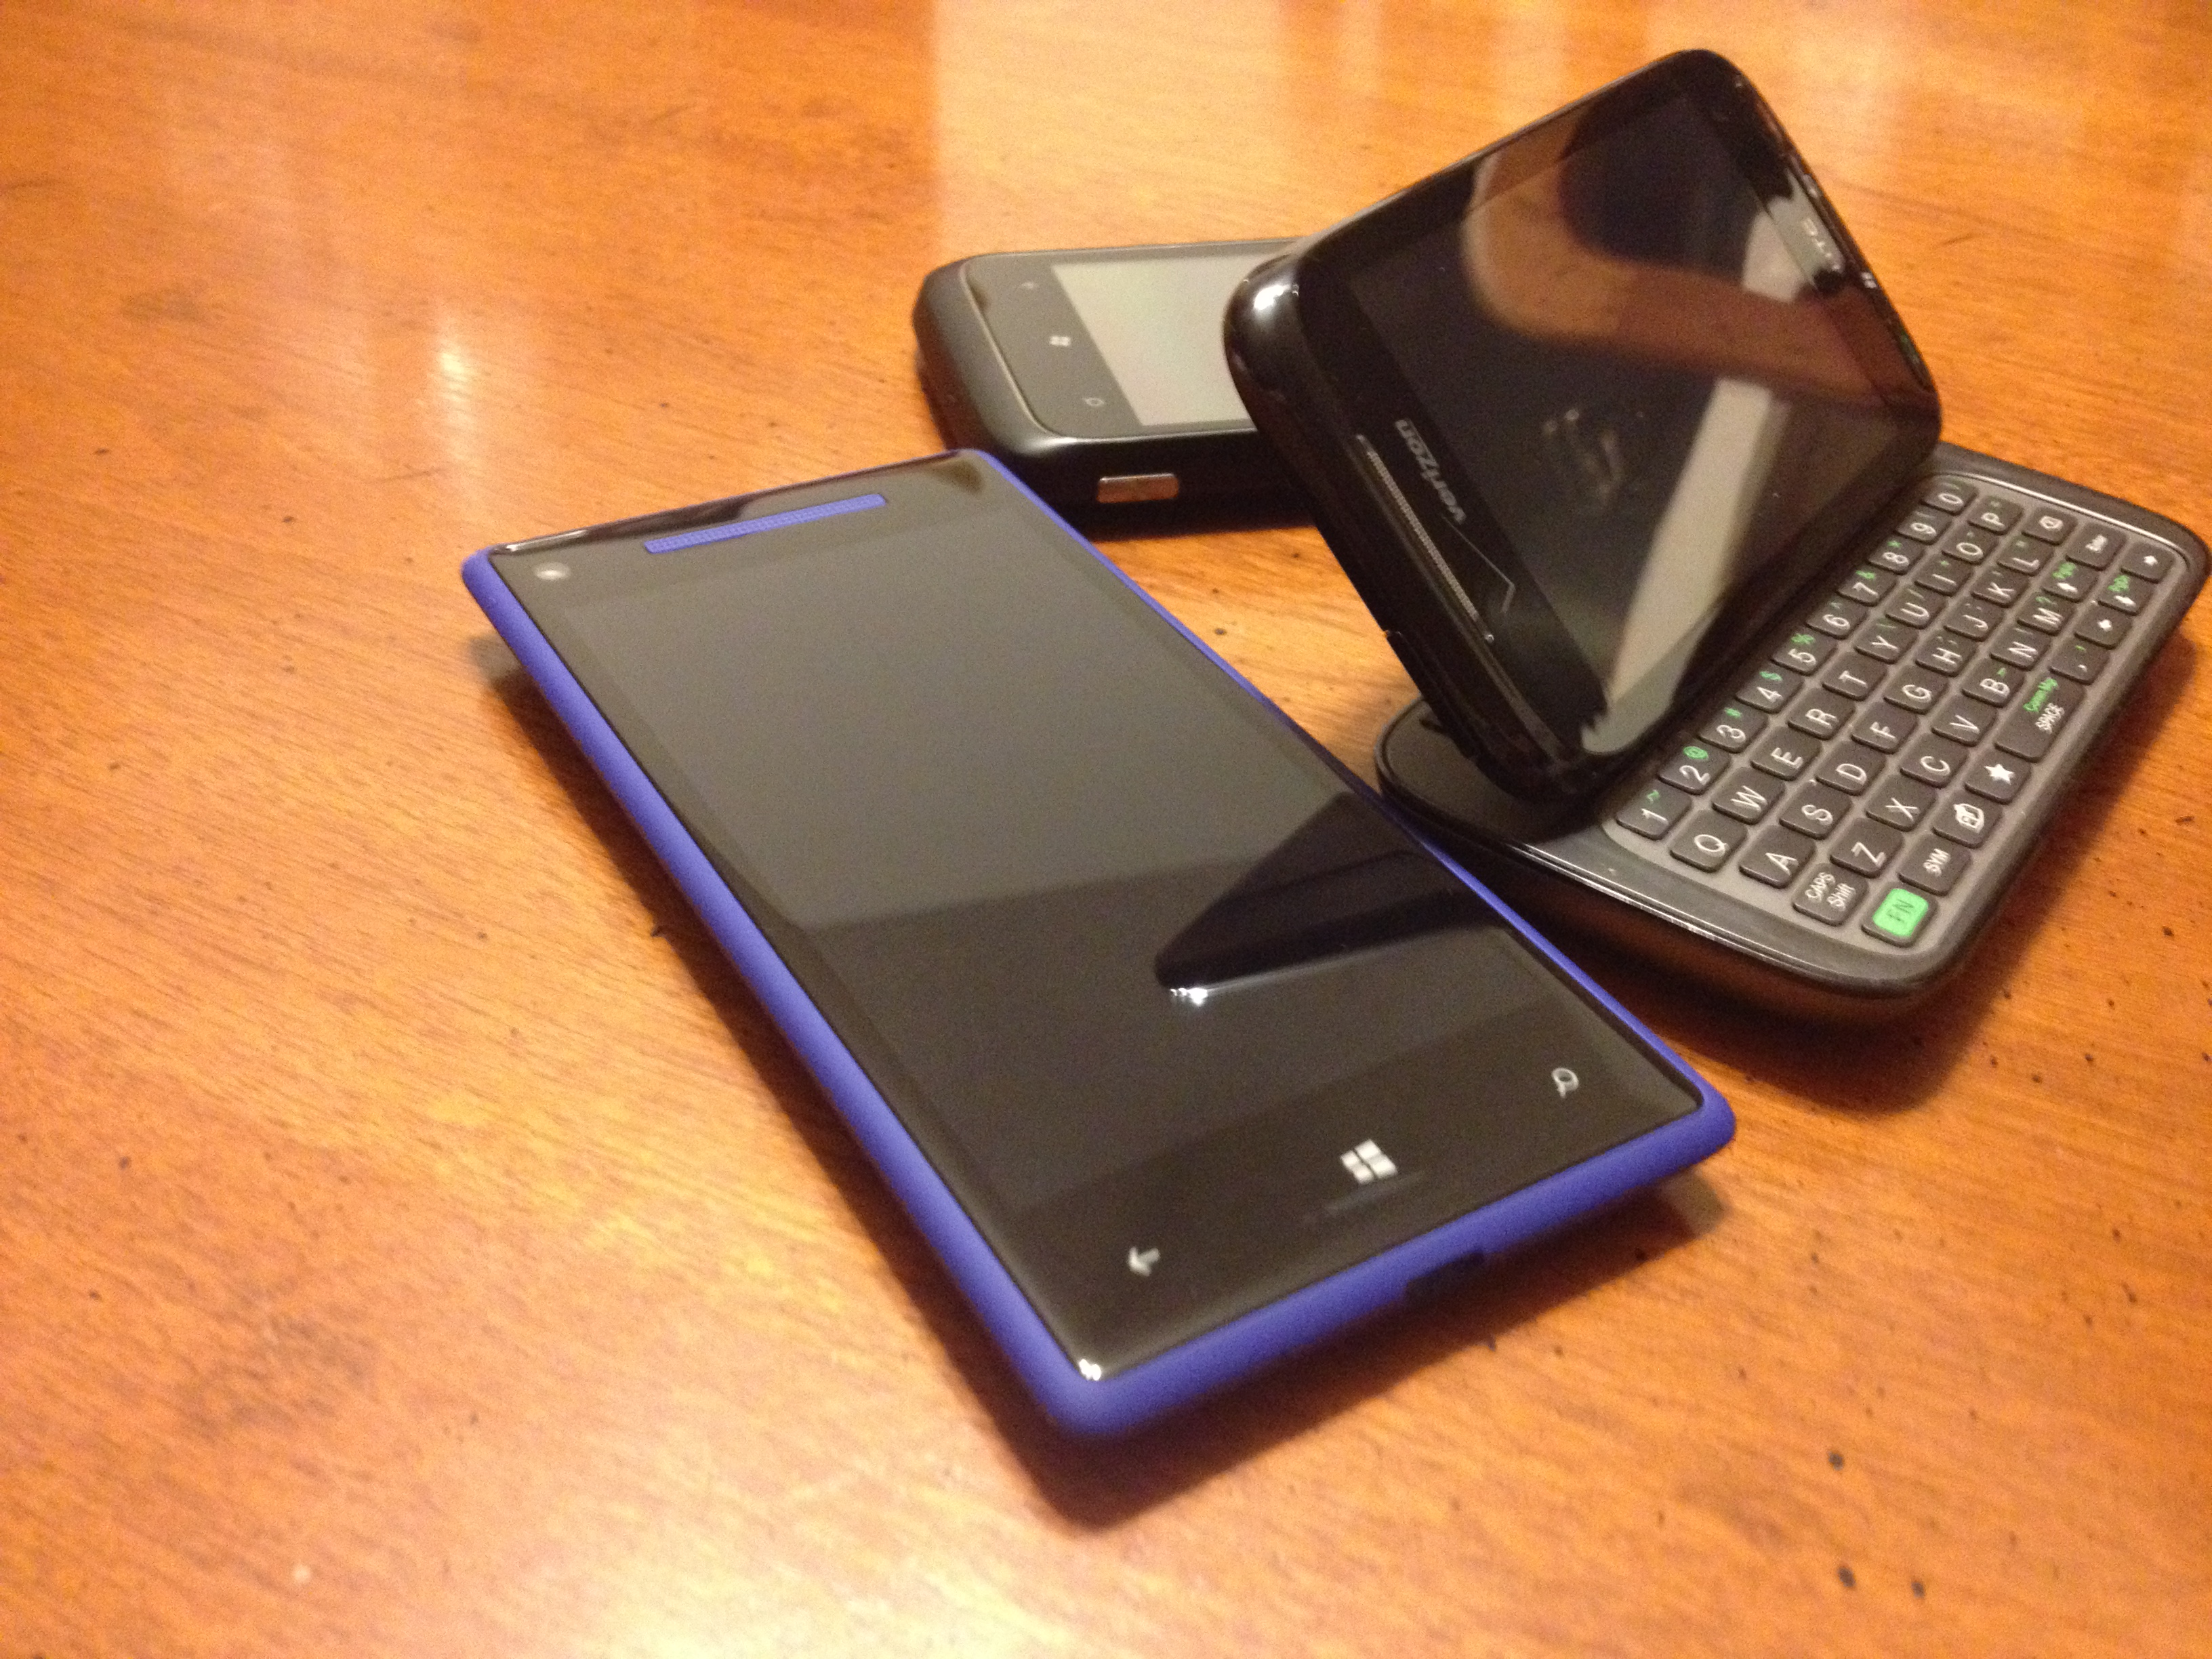 Windows Mobile, Windows Phone 7, Windows Phone 8